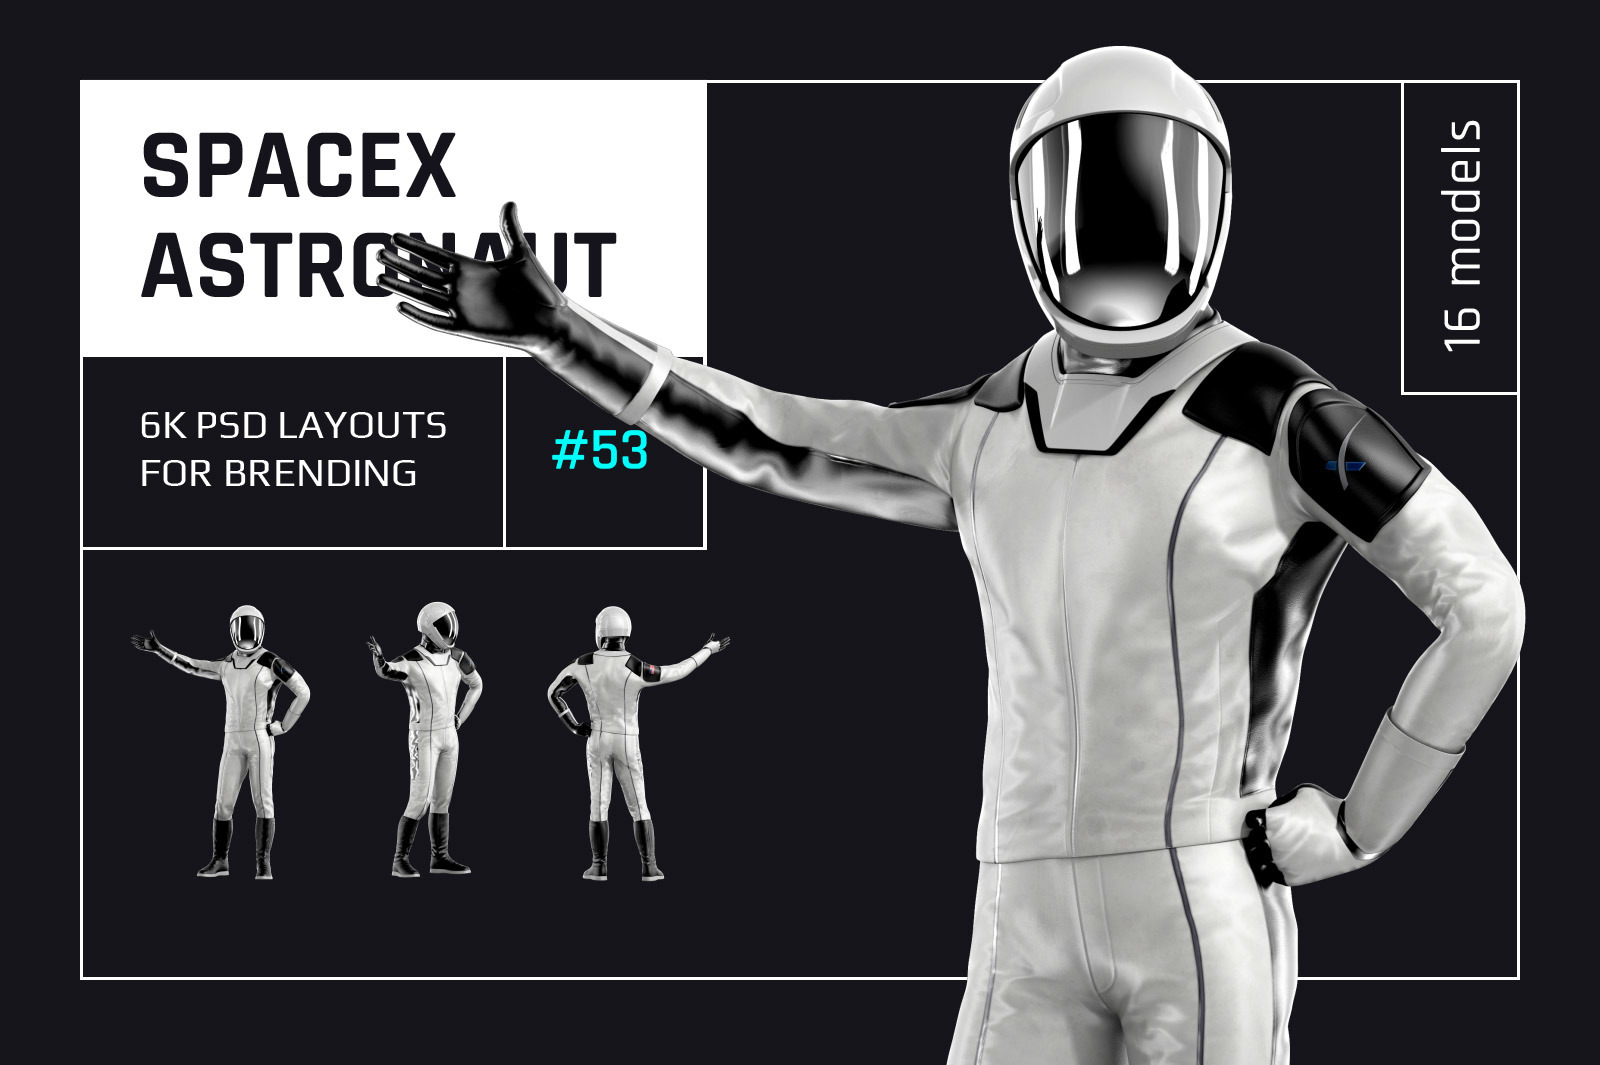 PSD Mockup 3D model SpaceX Astronaut #53